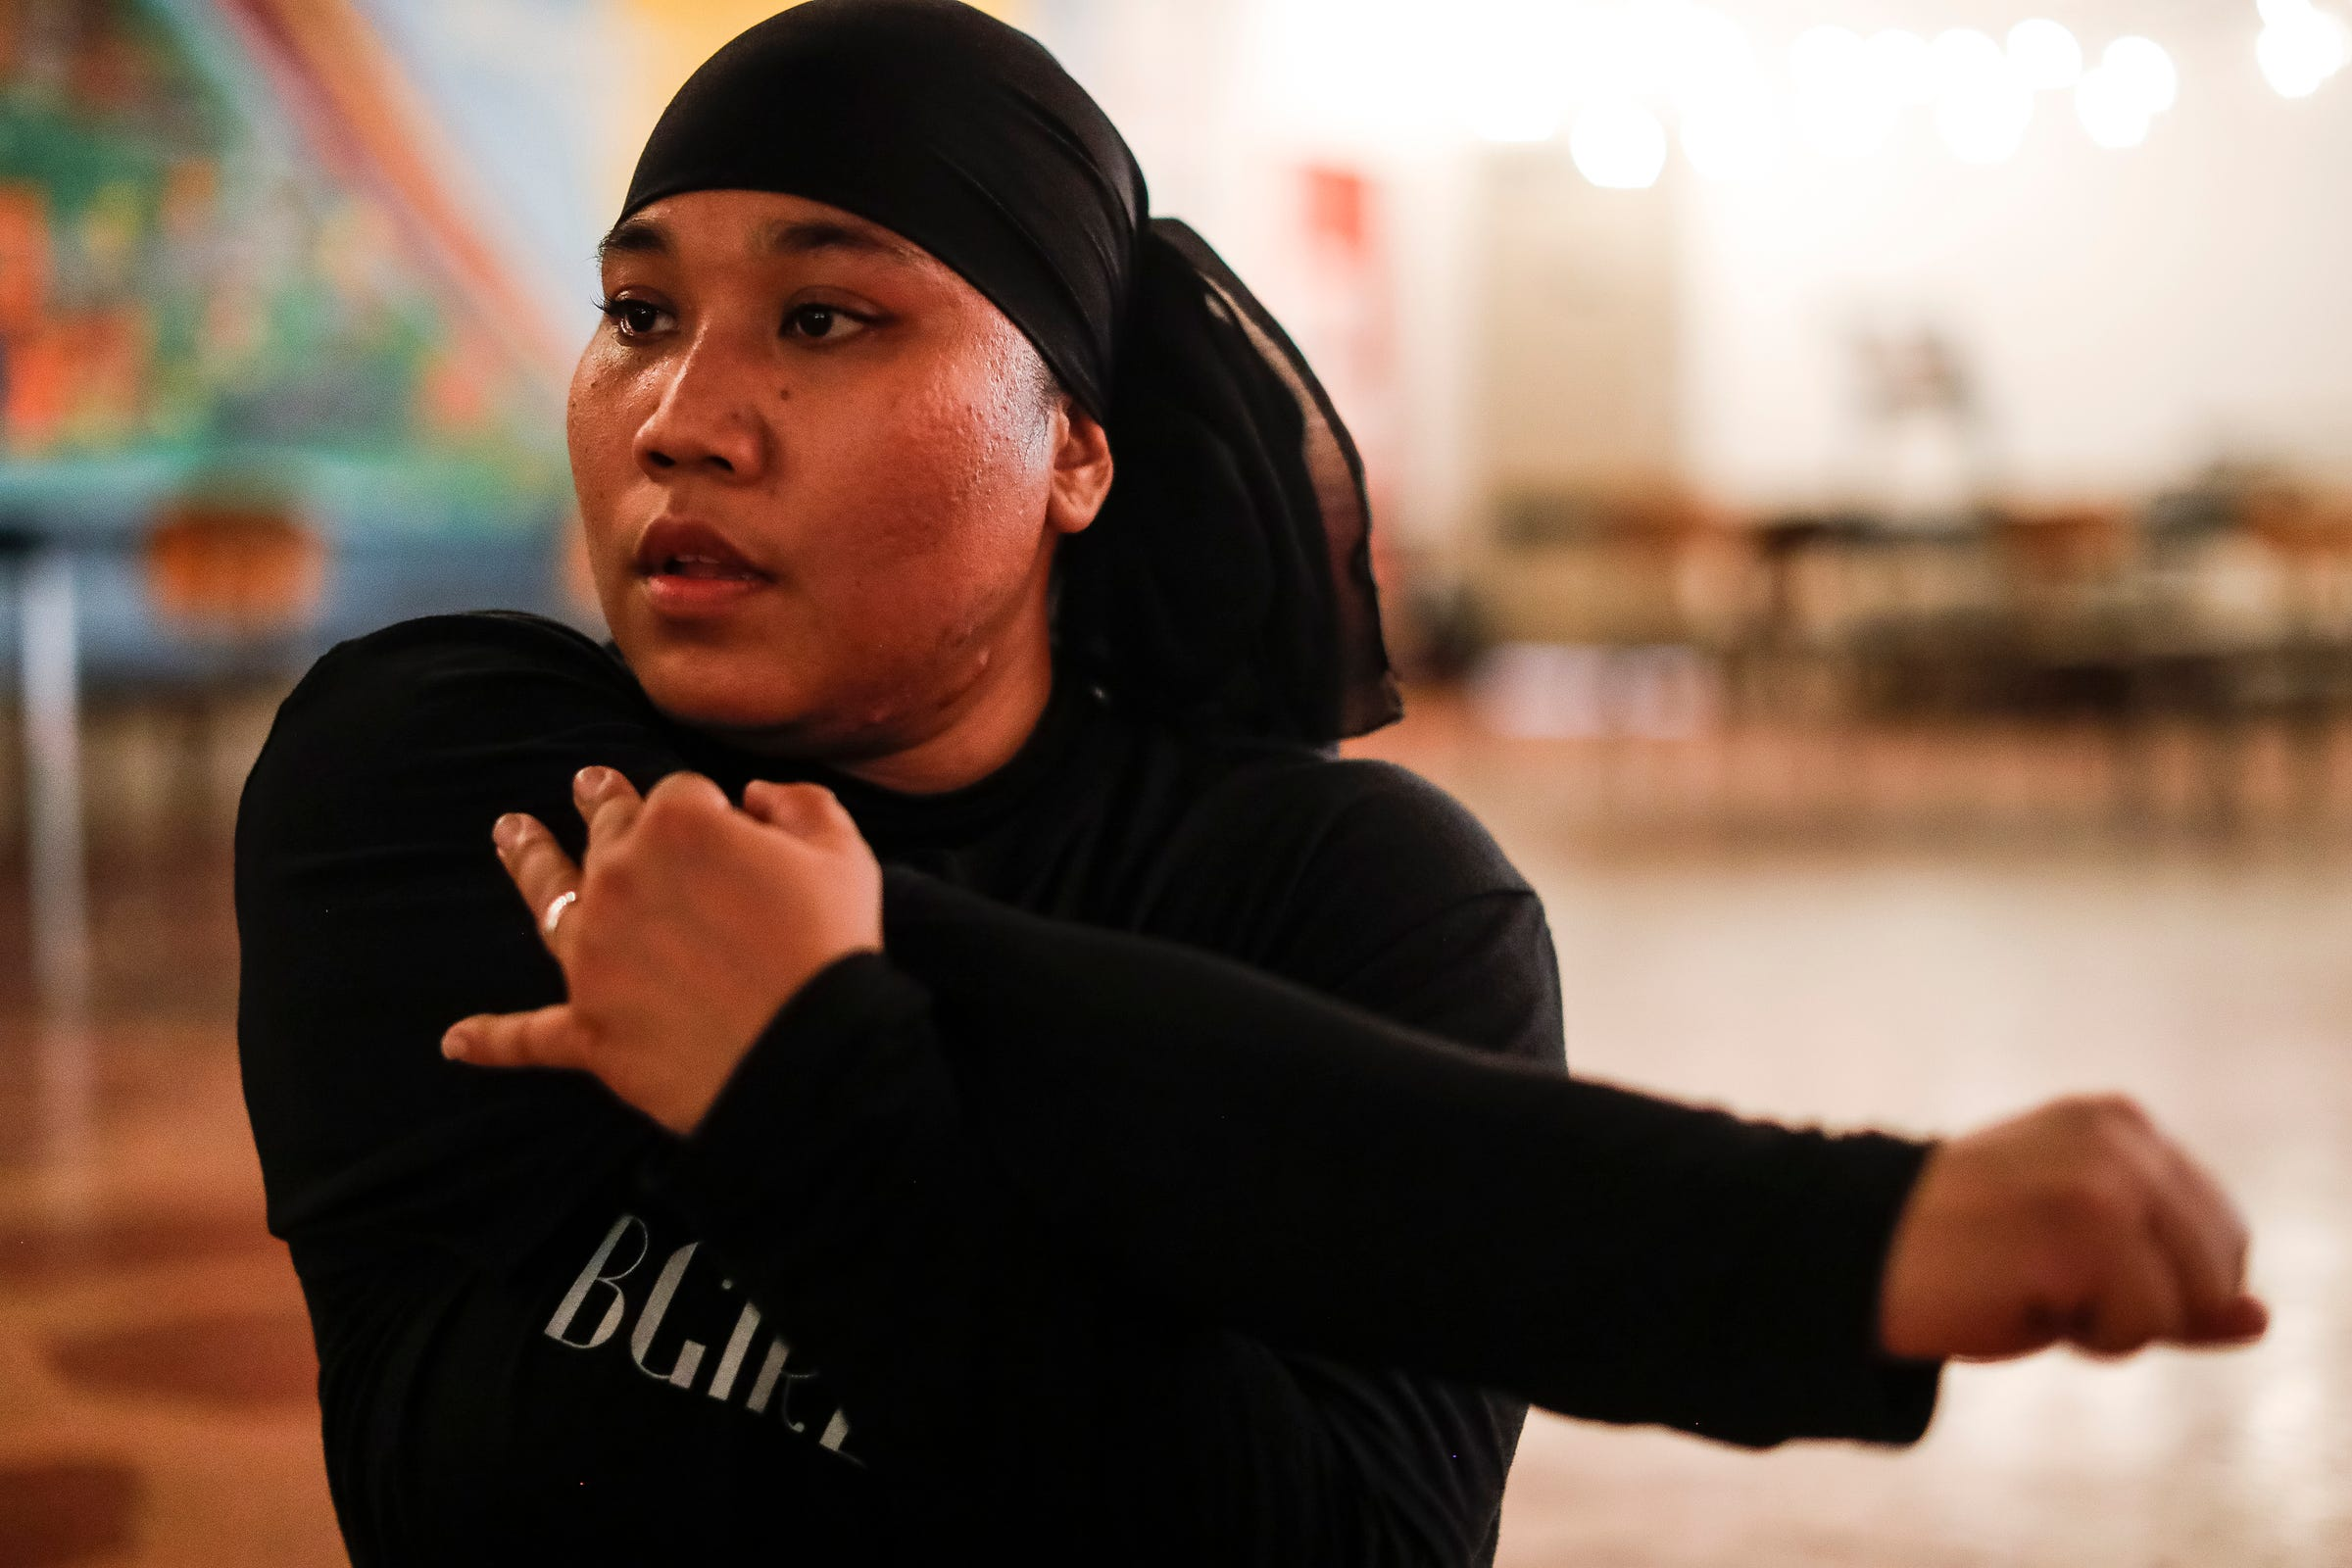 Mary Mar, also known as the BGIRL MAMA, practices break dance at Cass Corridor Neighborhood Development Corporation in Detroit on August 4, 2021.